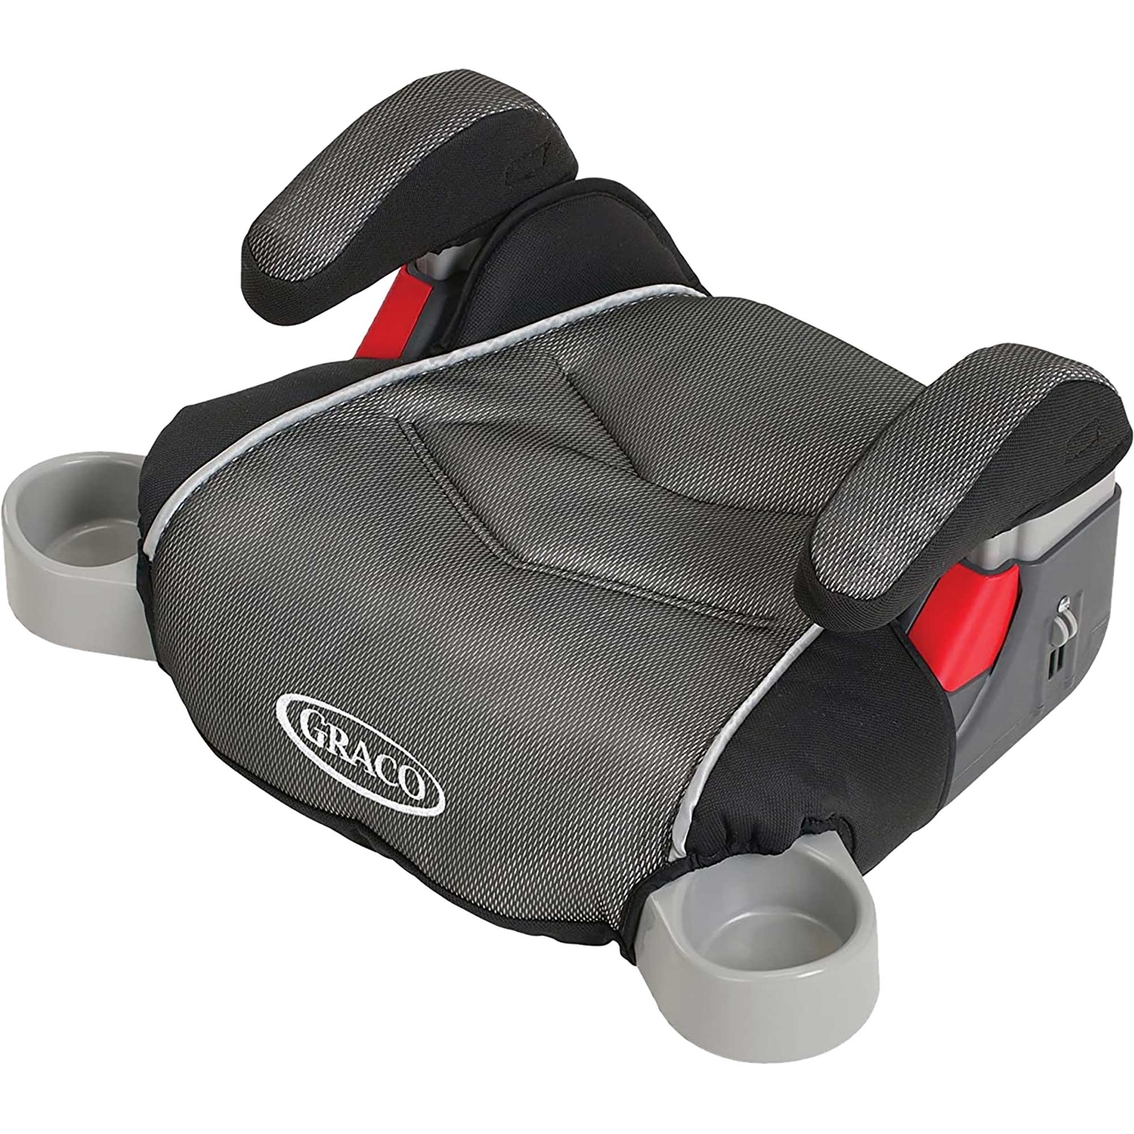 Graco Backless Turbobooster Car Seat | Car Booster Seats | Baby ...